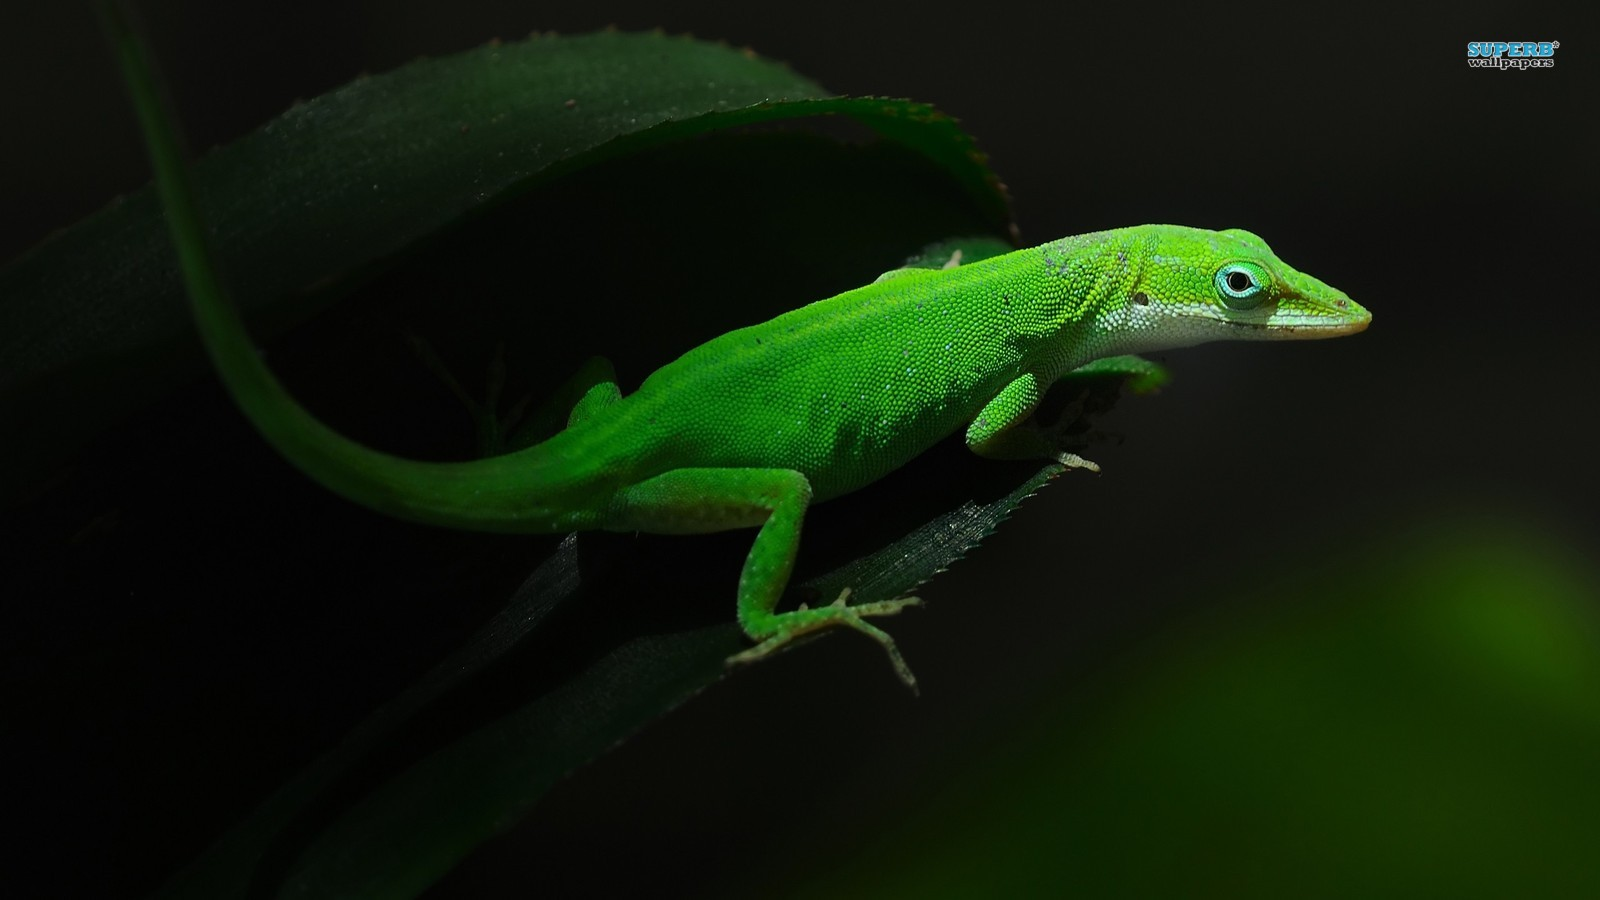 lizards image Gecko HD wallpapers and backgrounds photos